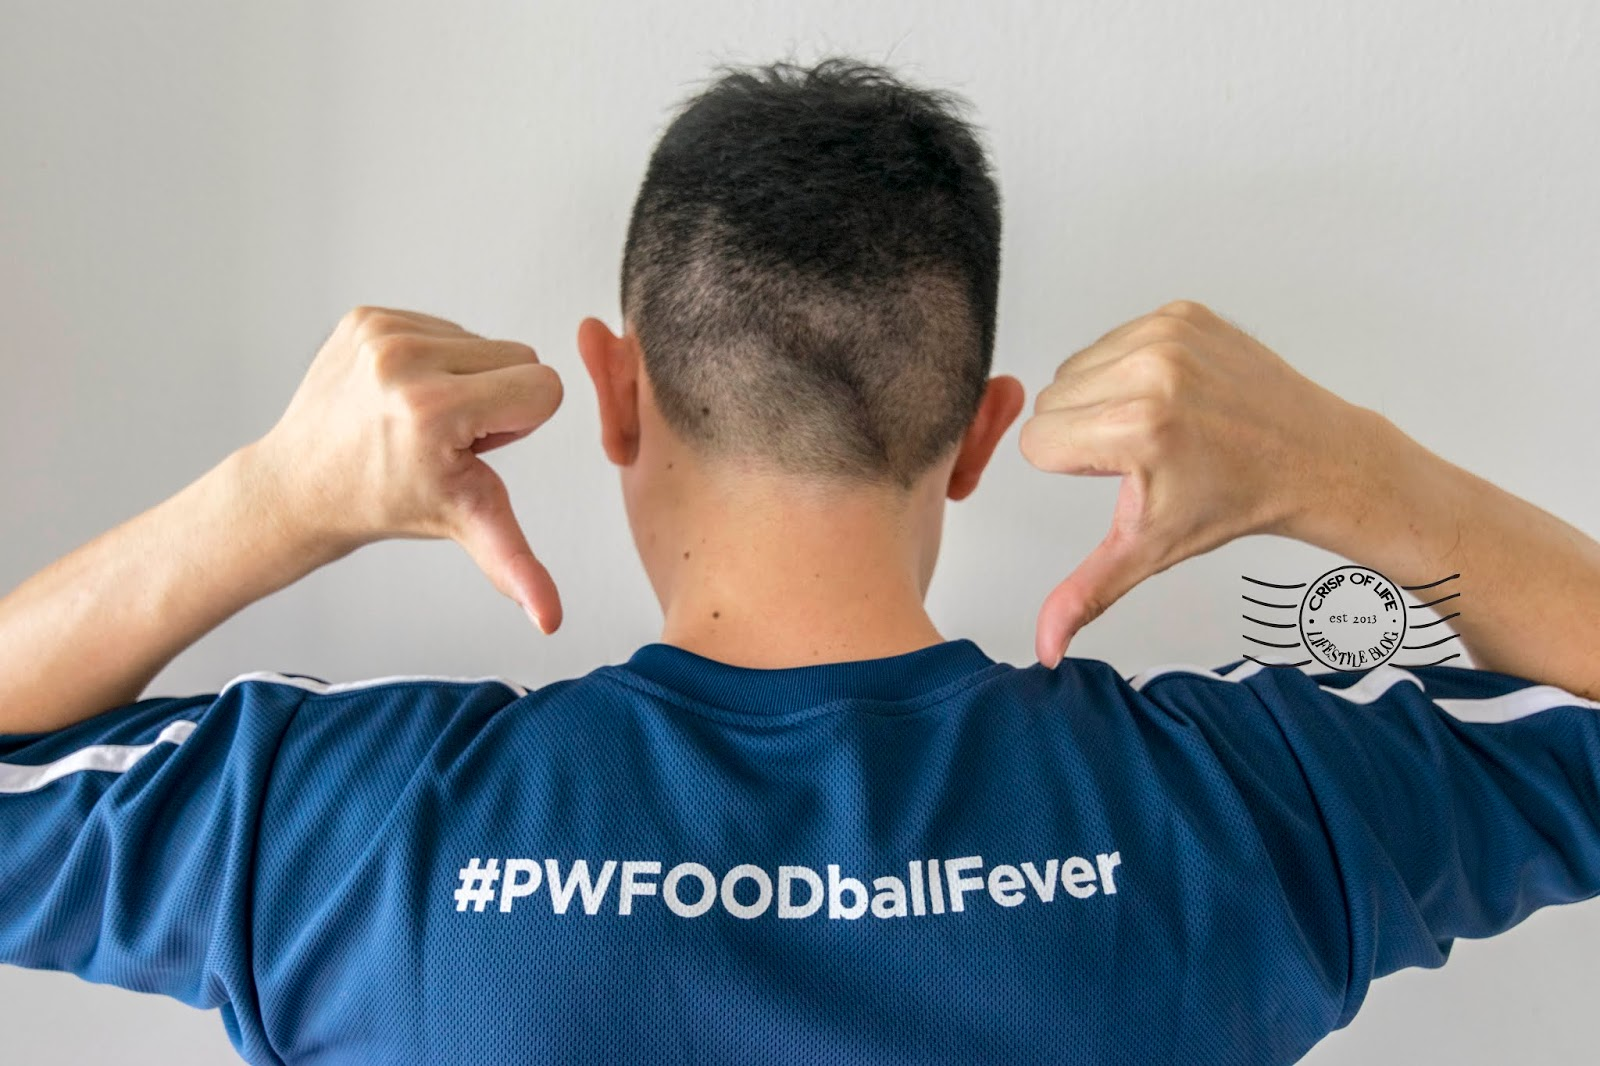 World Cup 2018 Pacific West Foodball Fever Campaign